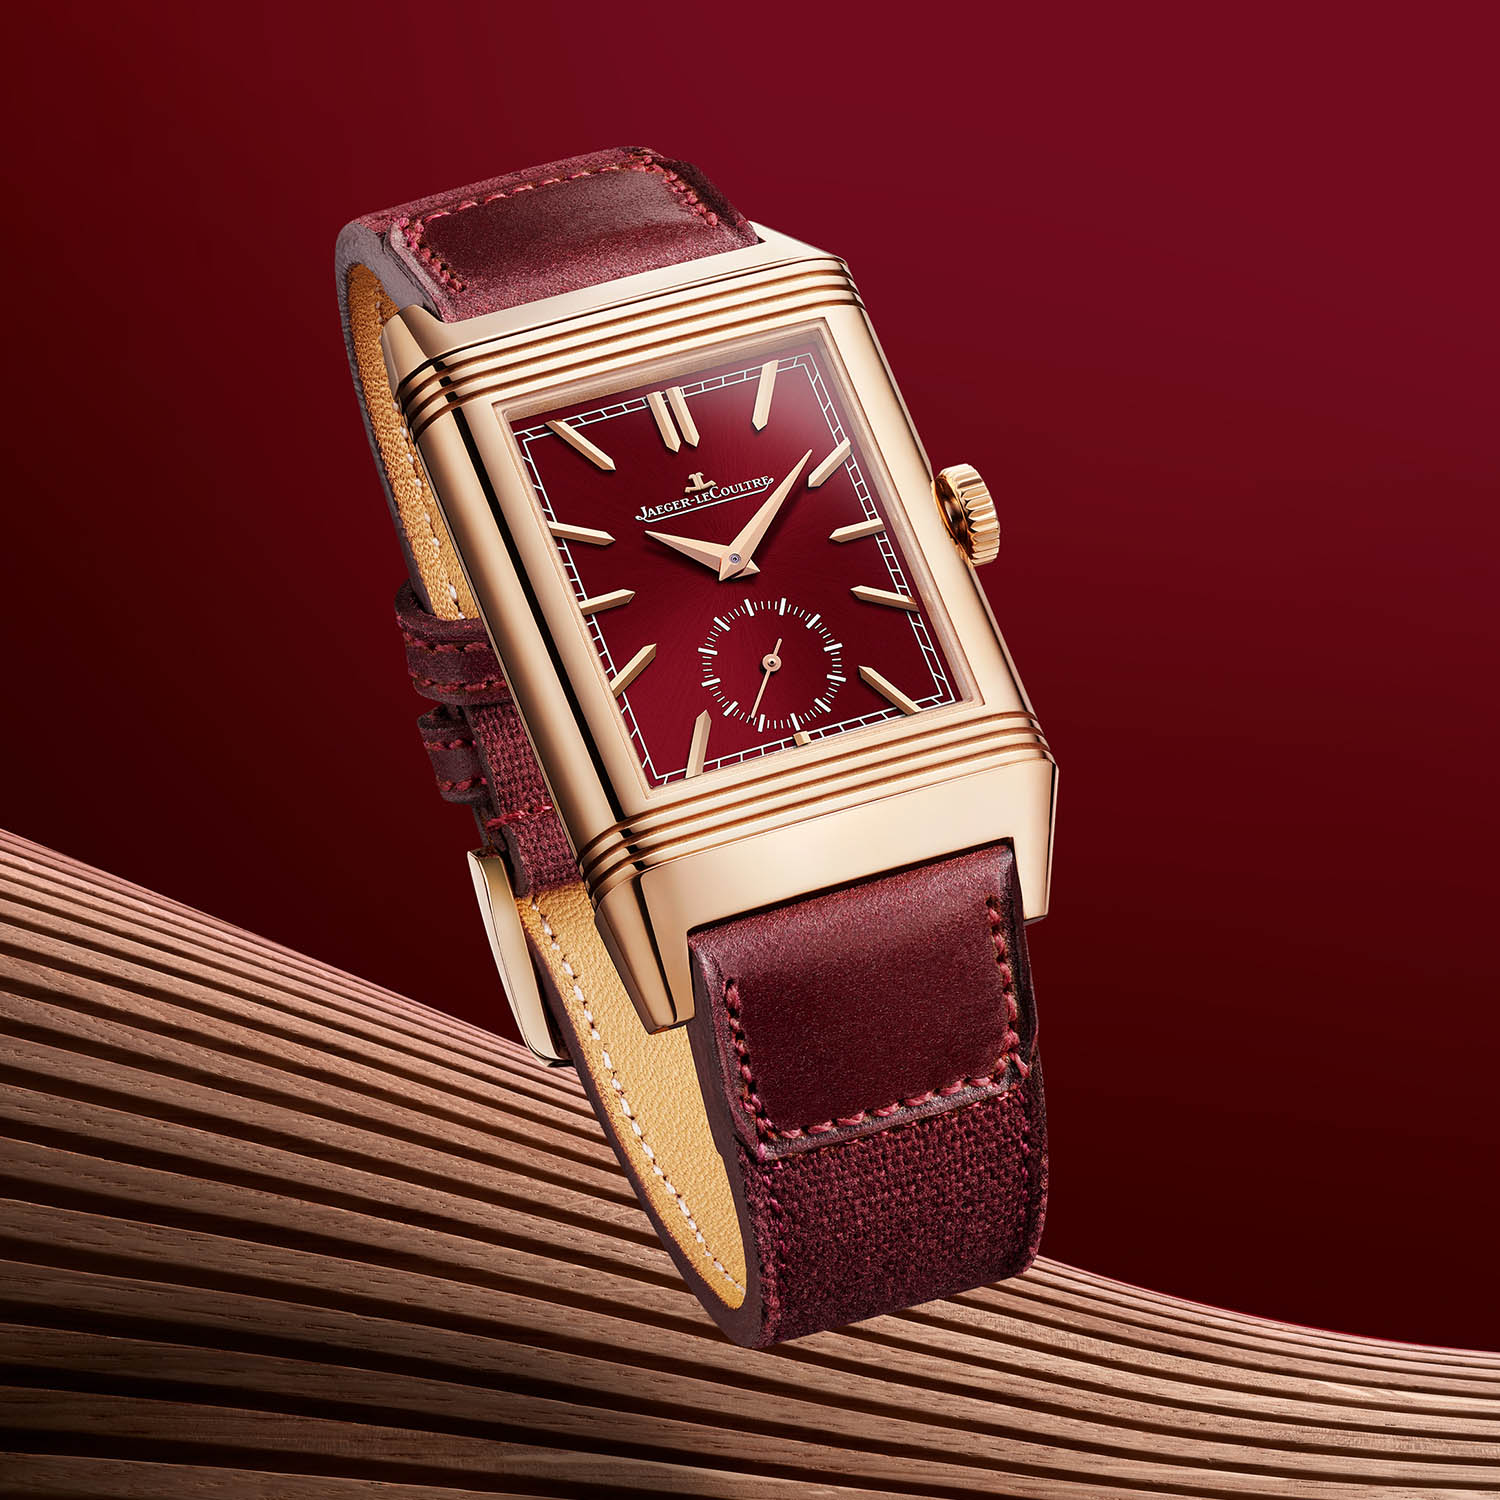 Jaeger LeCoultre Reverso Tribute DuoFace Fagliano Burgundy Limited 13